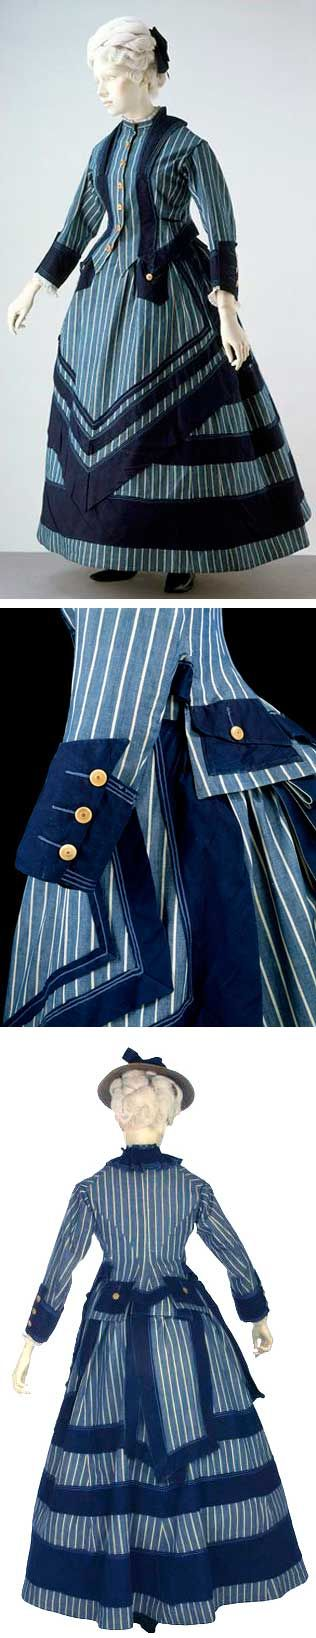 """Dress, U.K., ca. 1872. Cotton, trimmed with silk braid; bone buttons. Unlined. Victoria & Albert Museum: """"This is a jaunty, sensible woman's outfit of the early 1870s ... A hemline just at the ankle indicates a garment intended for walking outdoors. ... It is made of cotton, so it is easily washed and dried. Despite its practical use, the ensemble still incorporates the details of fashionable dress, with an overskirt in front and a bustle worn underneath at the back."""""""